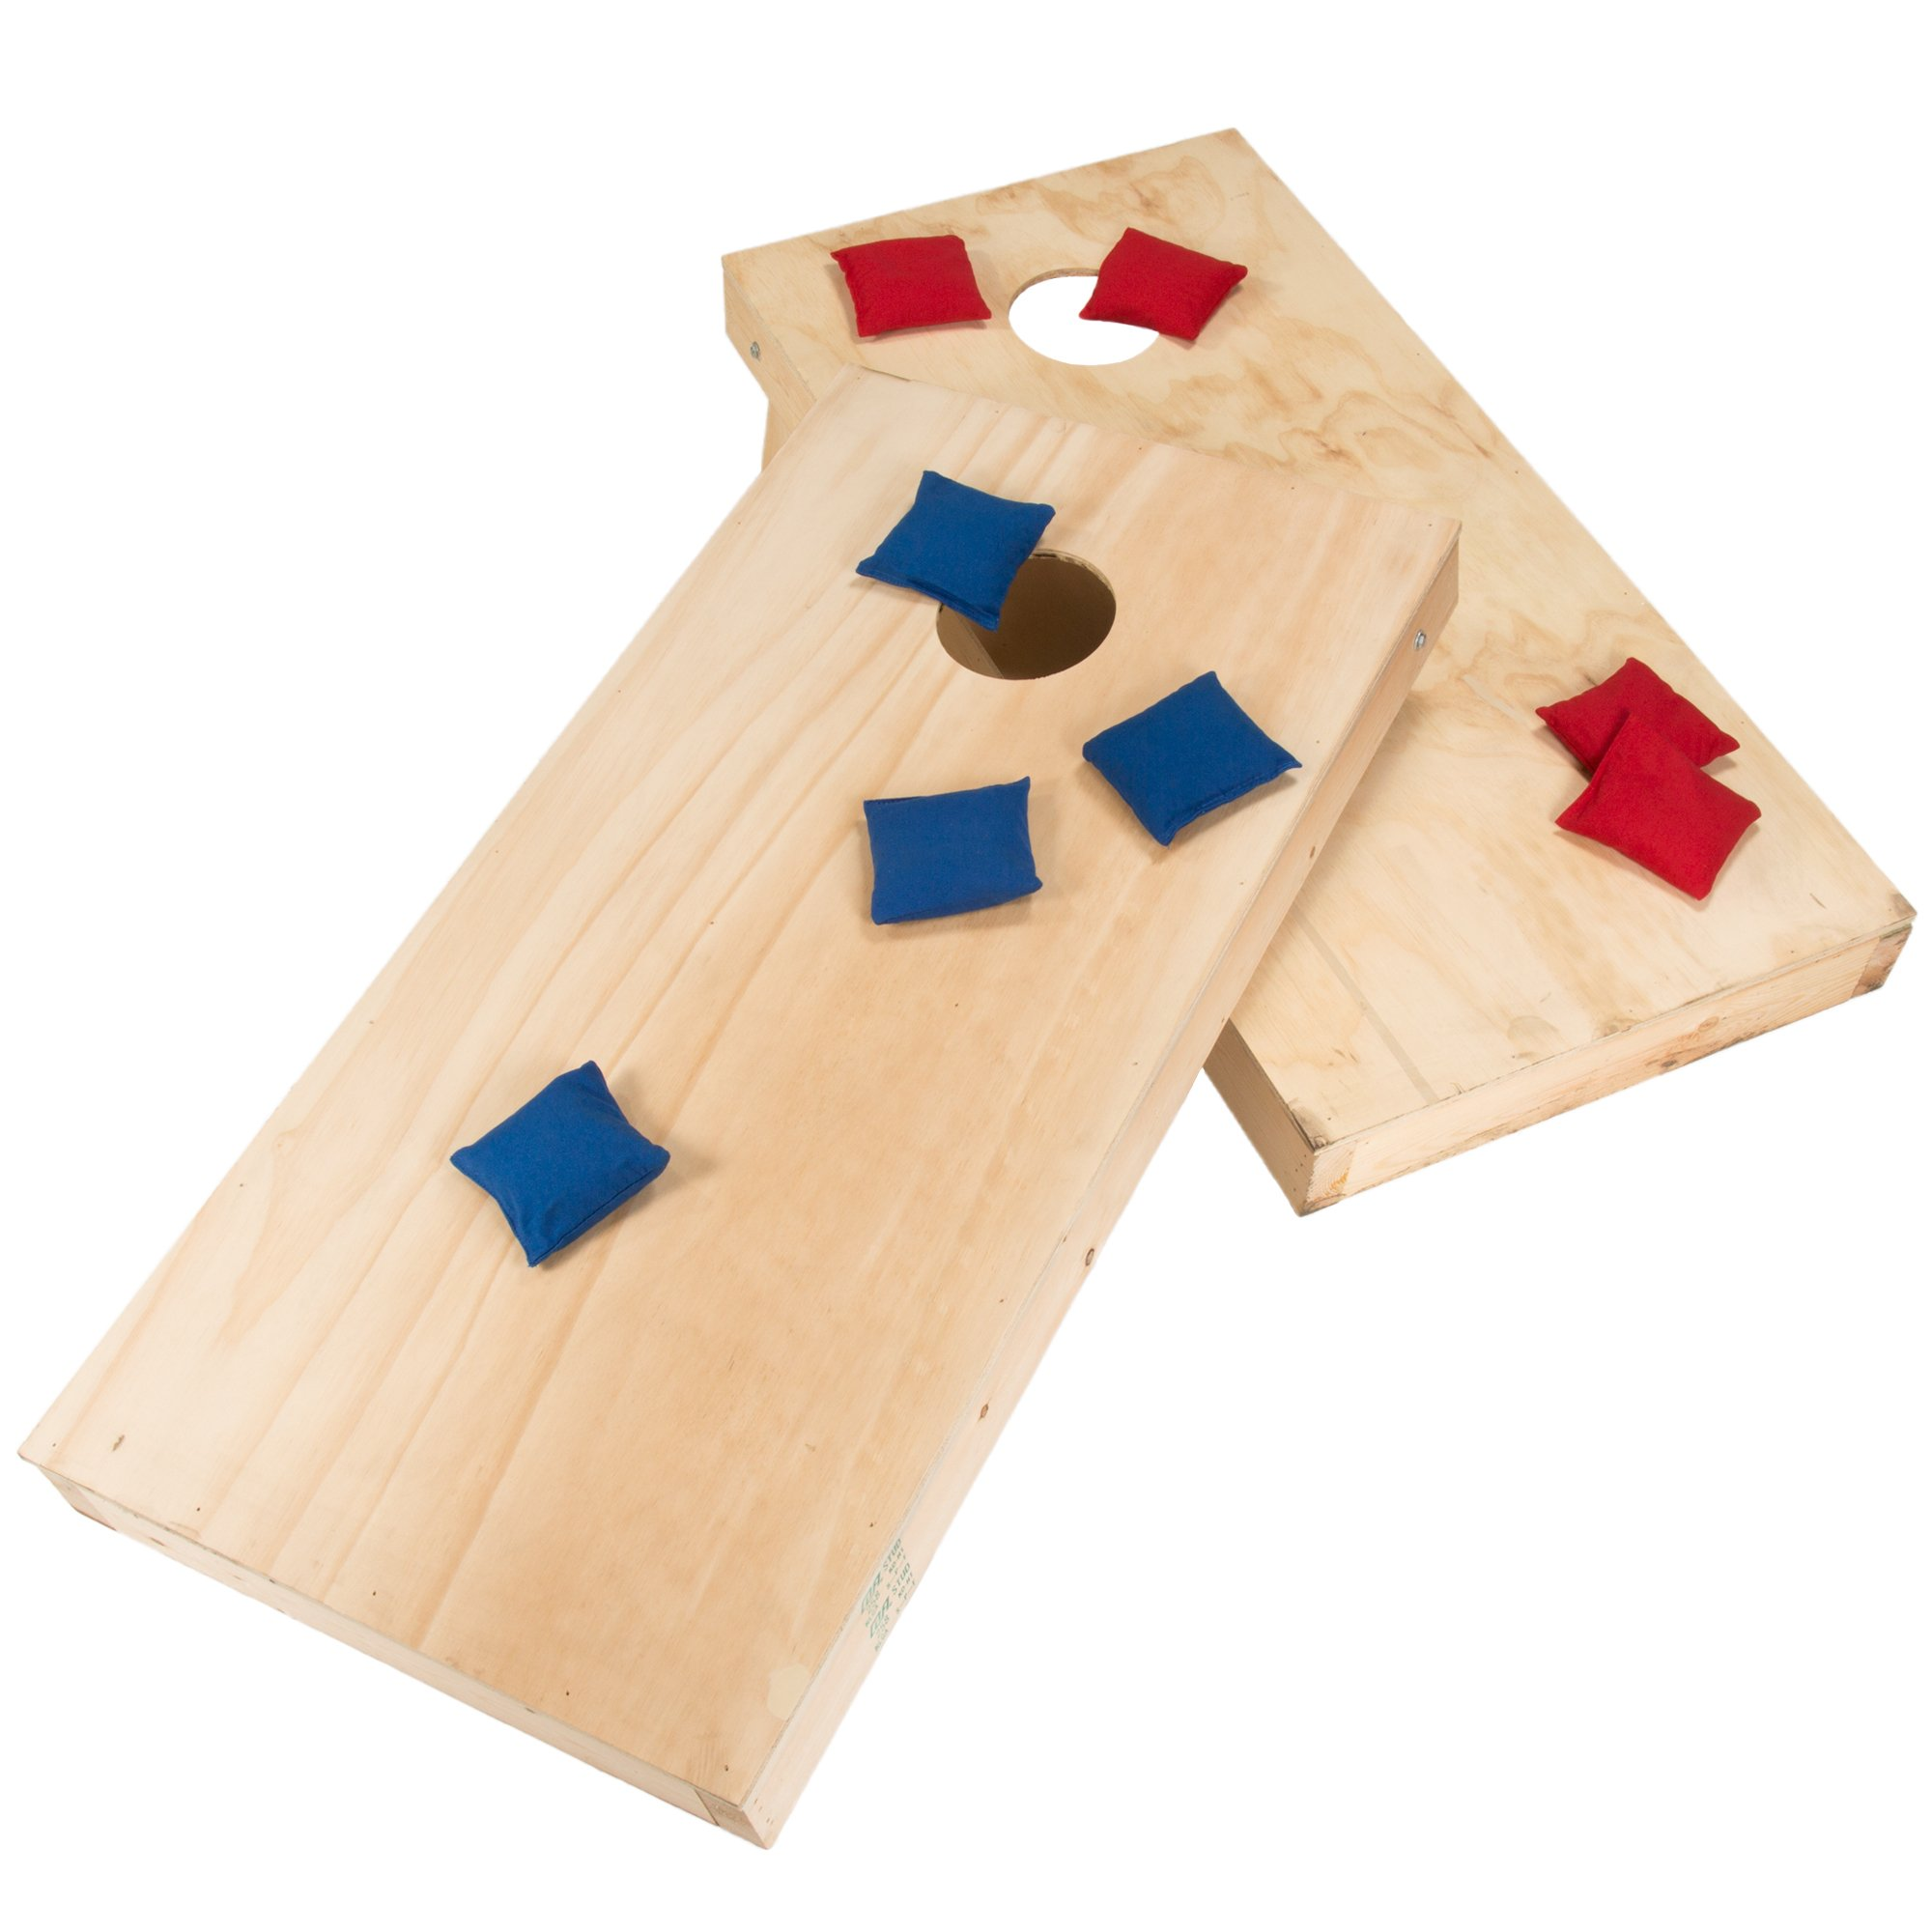 Trademark Do-It-Yourself Regulation Size Cornhole Boards and Bags